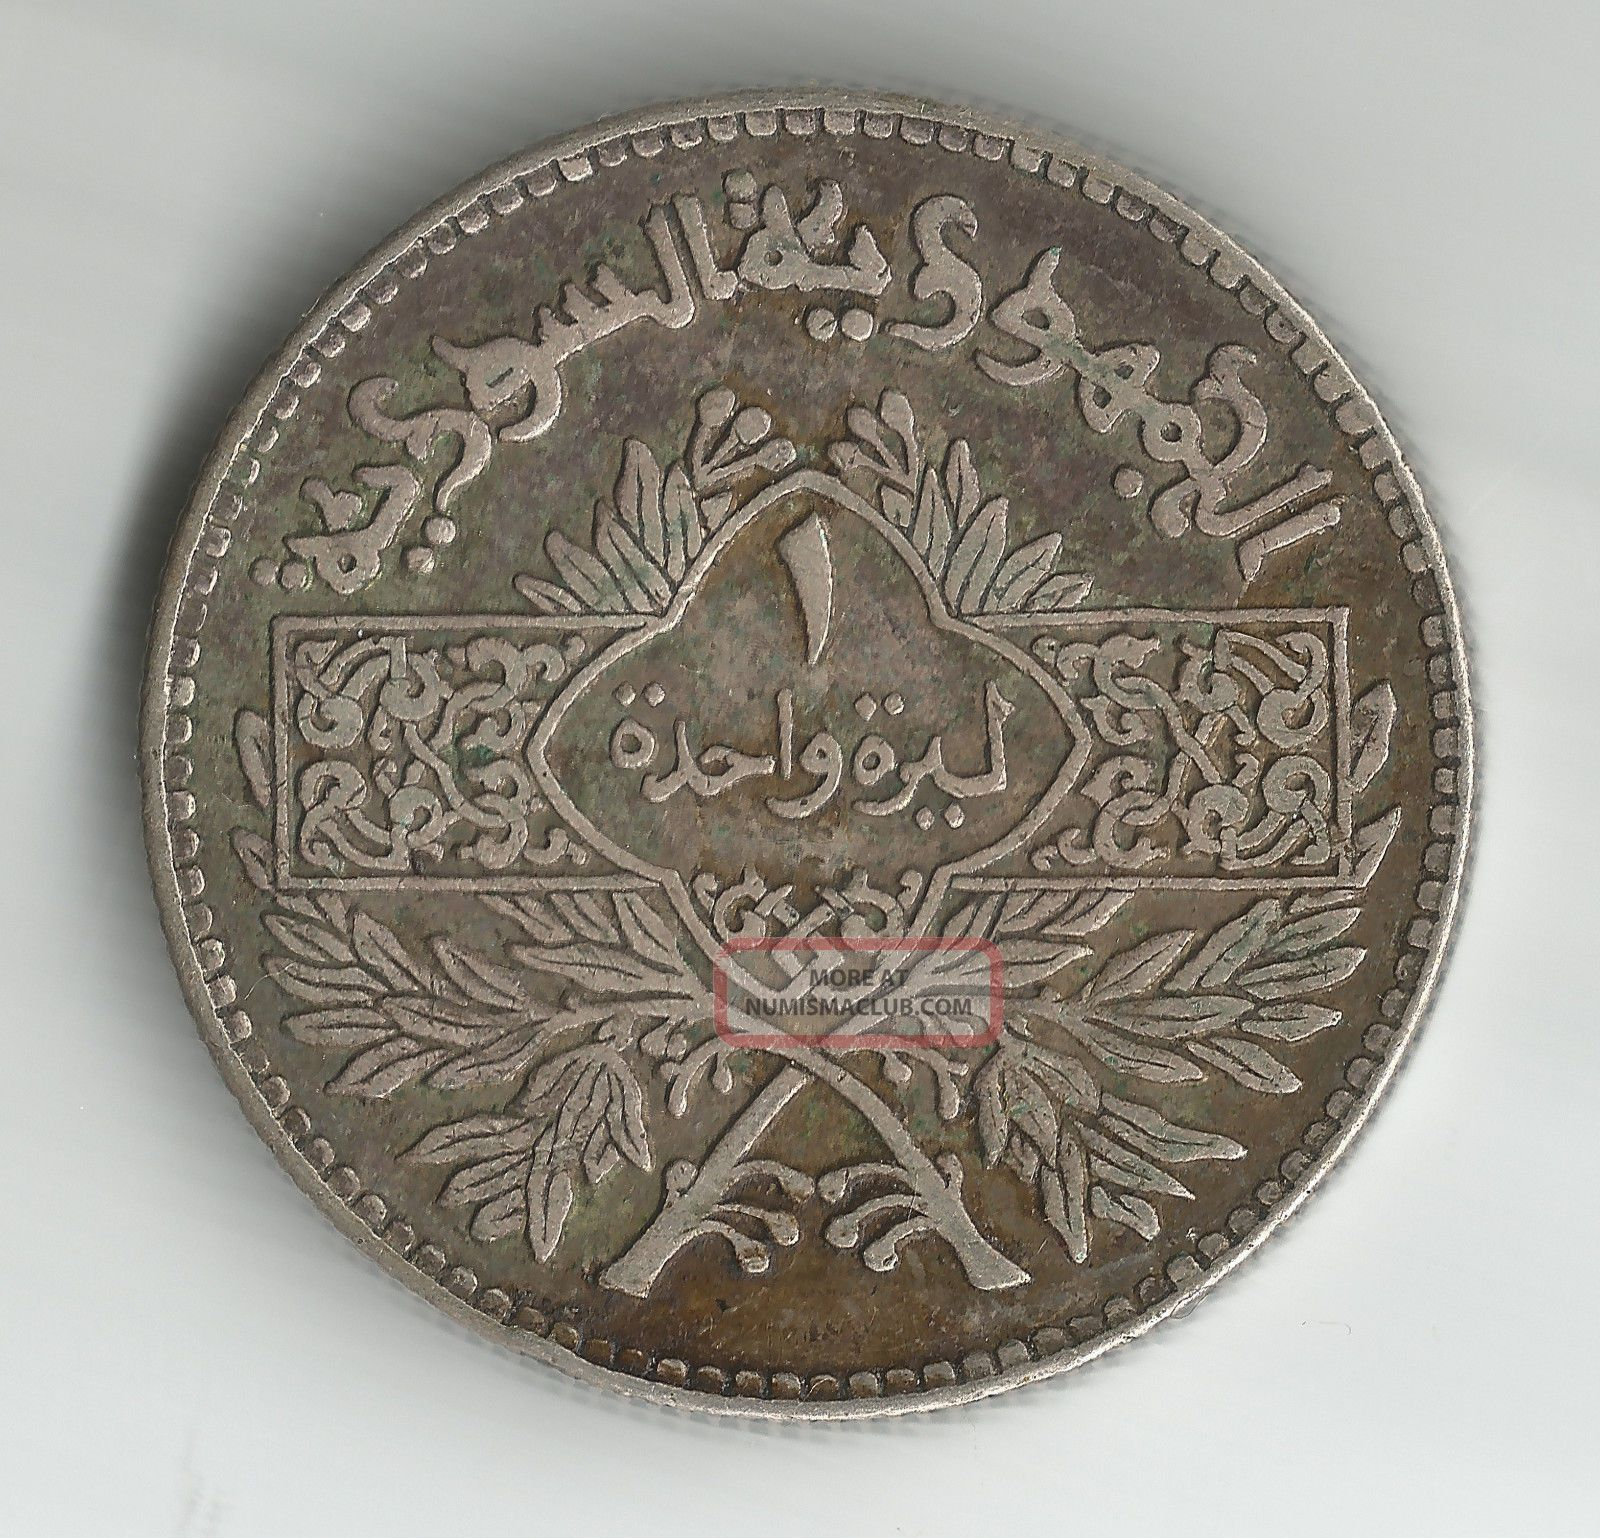 Syria Silver 1 Lira 1950 Middle East photo